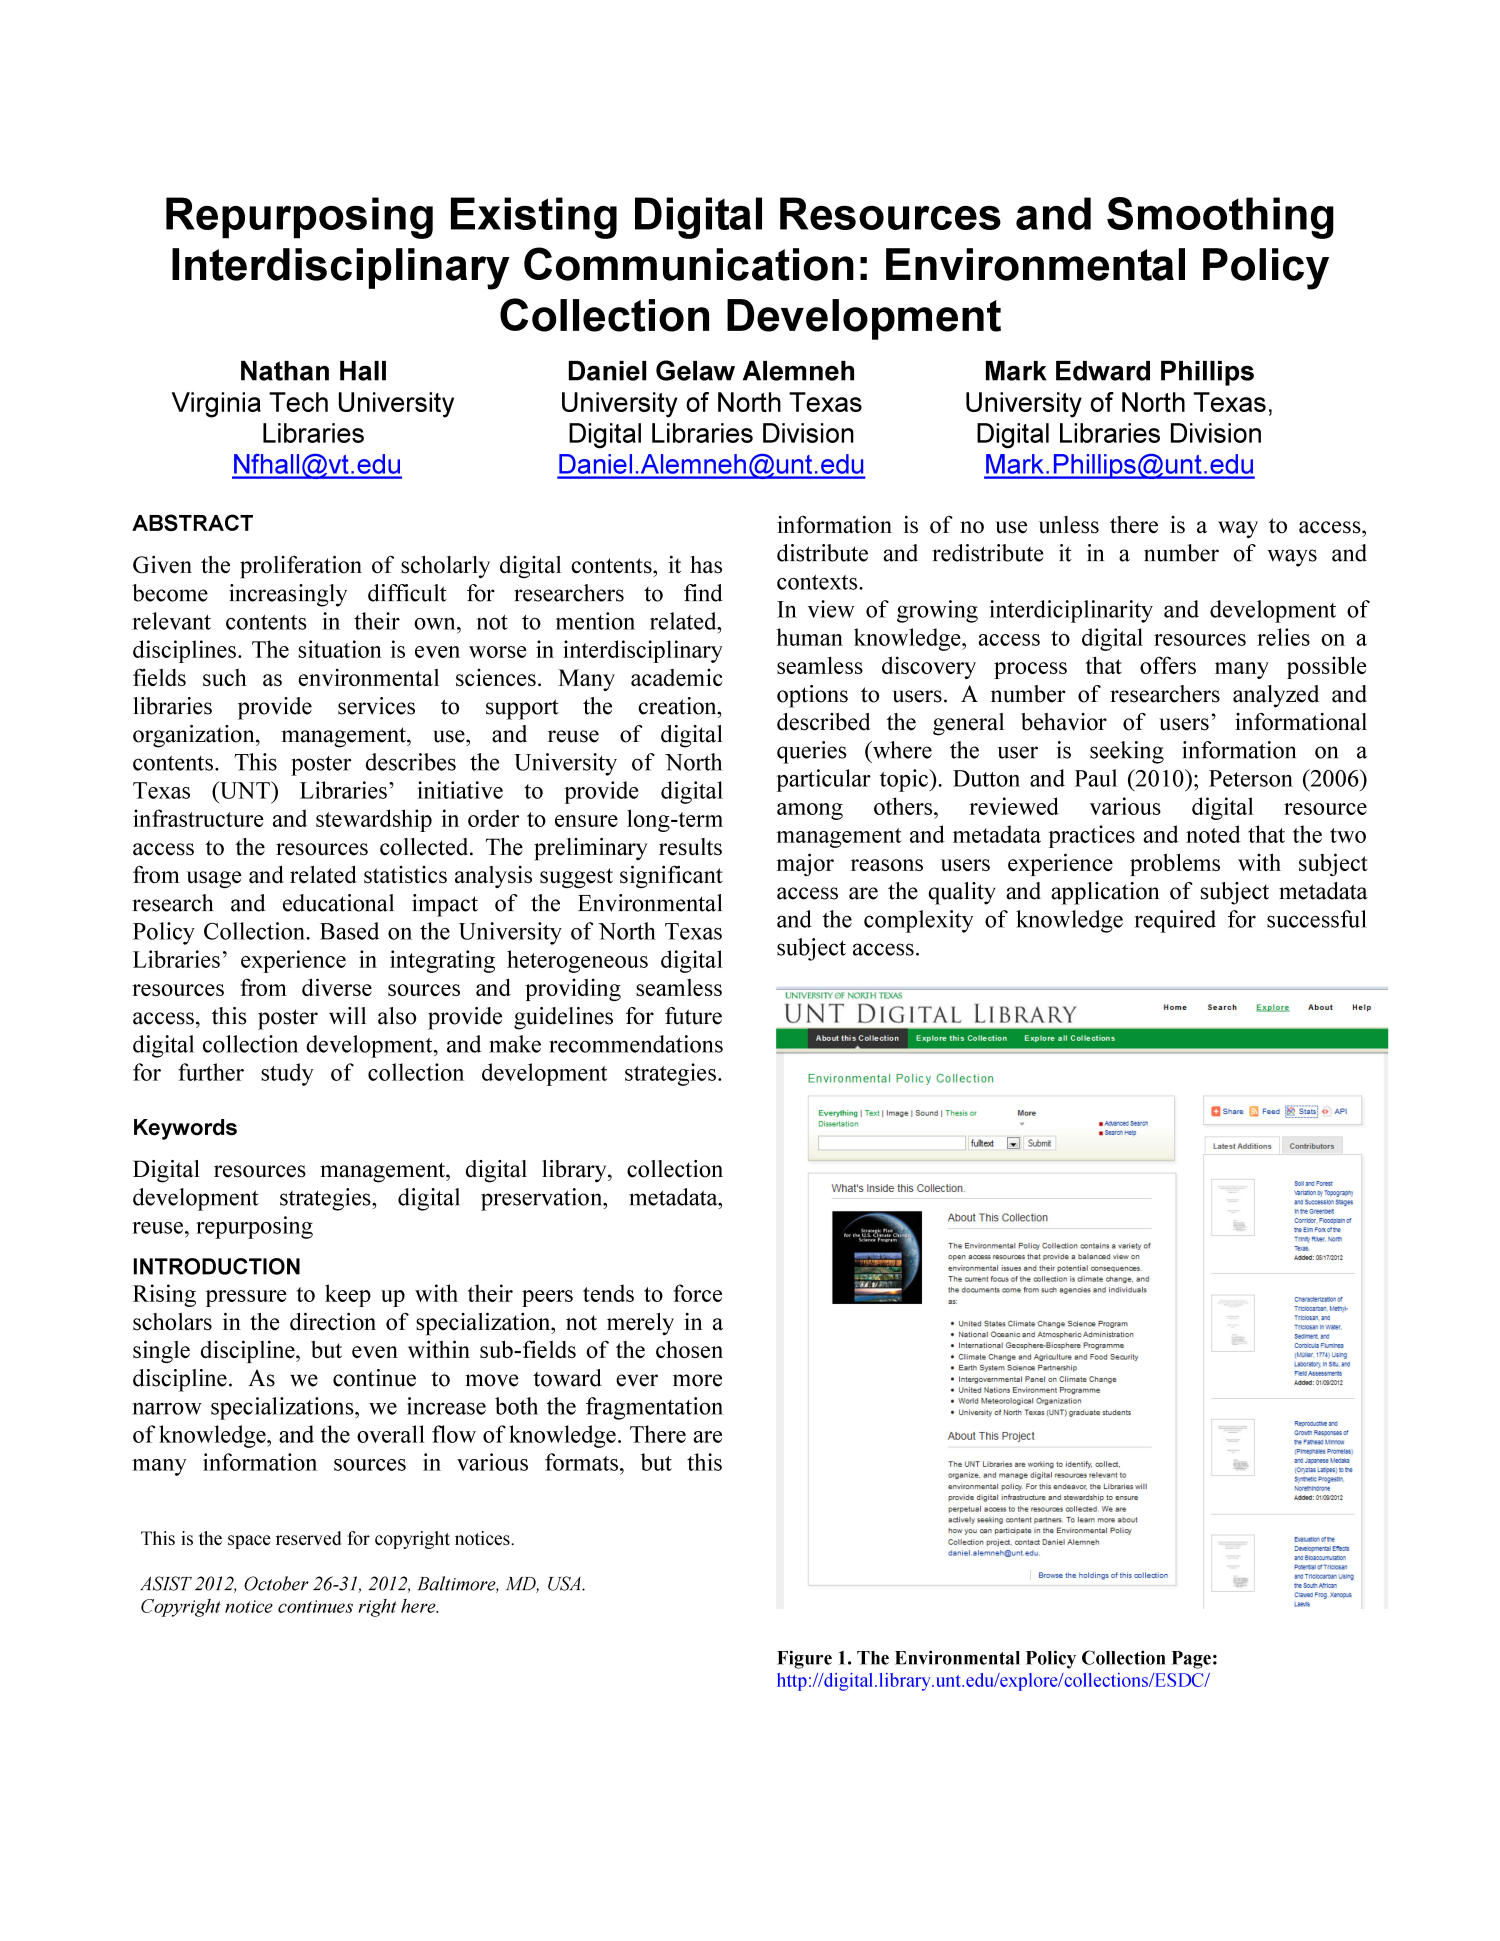 Repurposing Existing Digital Resources and Smoothing Interdisciplinary Communication: Environmental Policy Collection Development                                                                                                      1